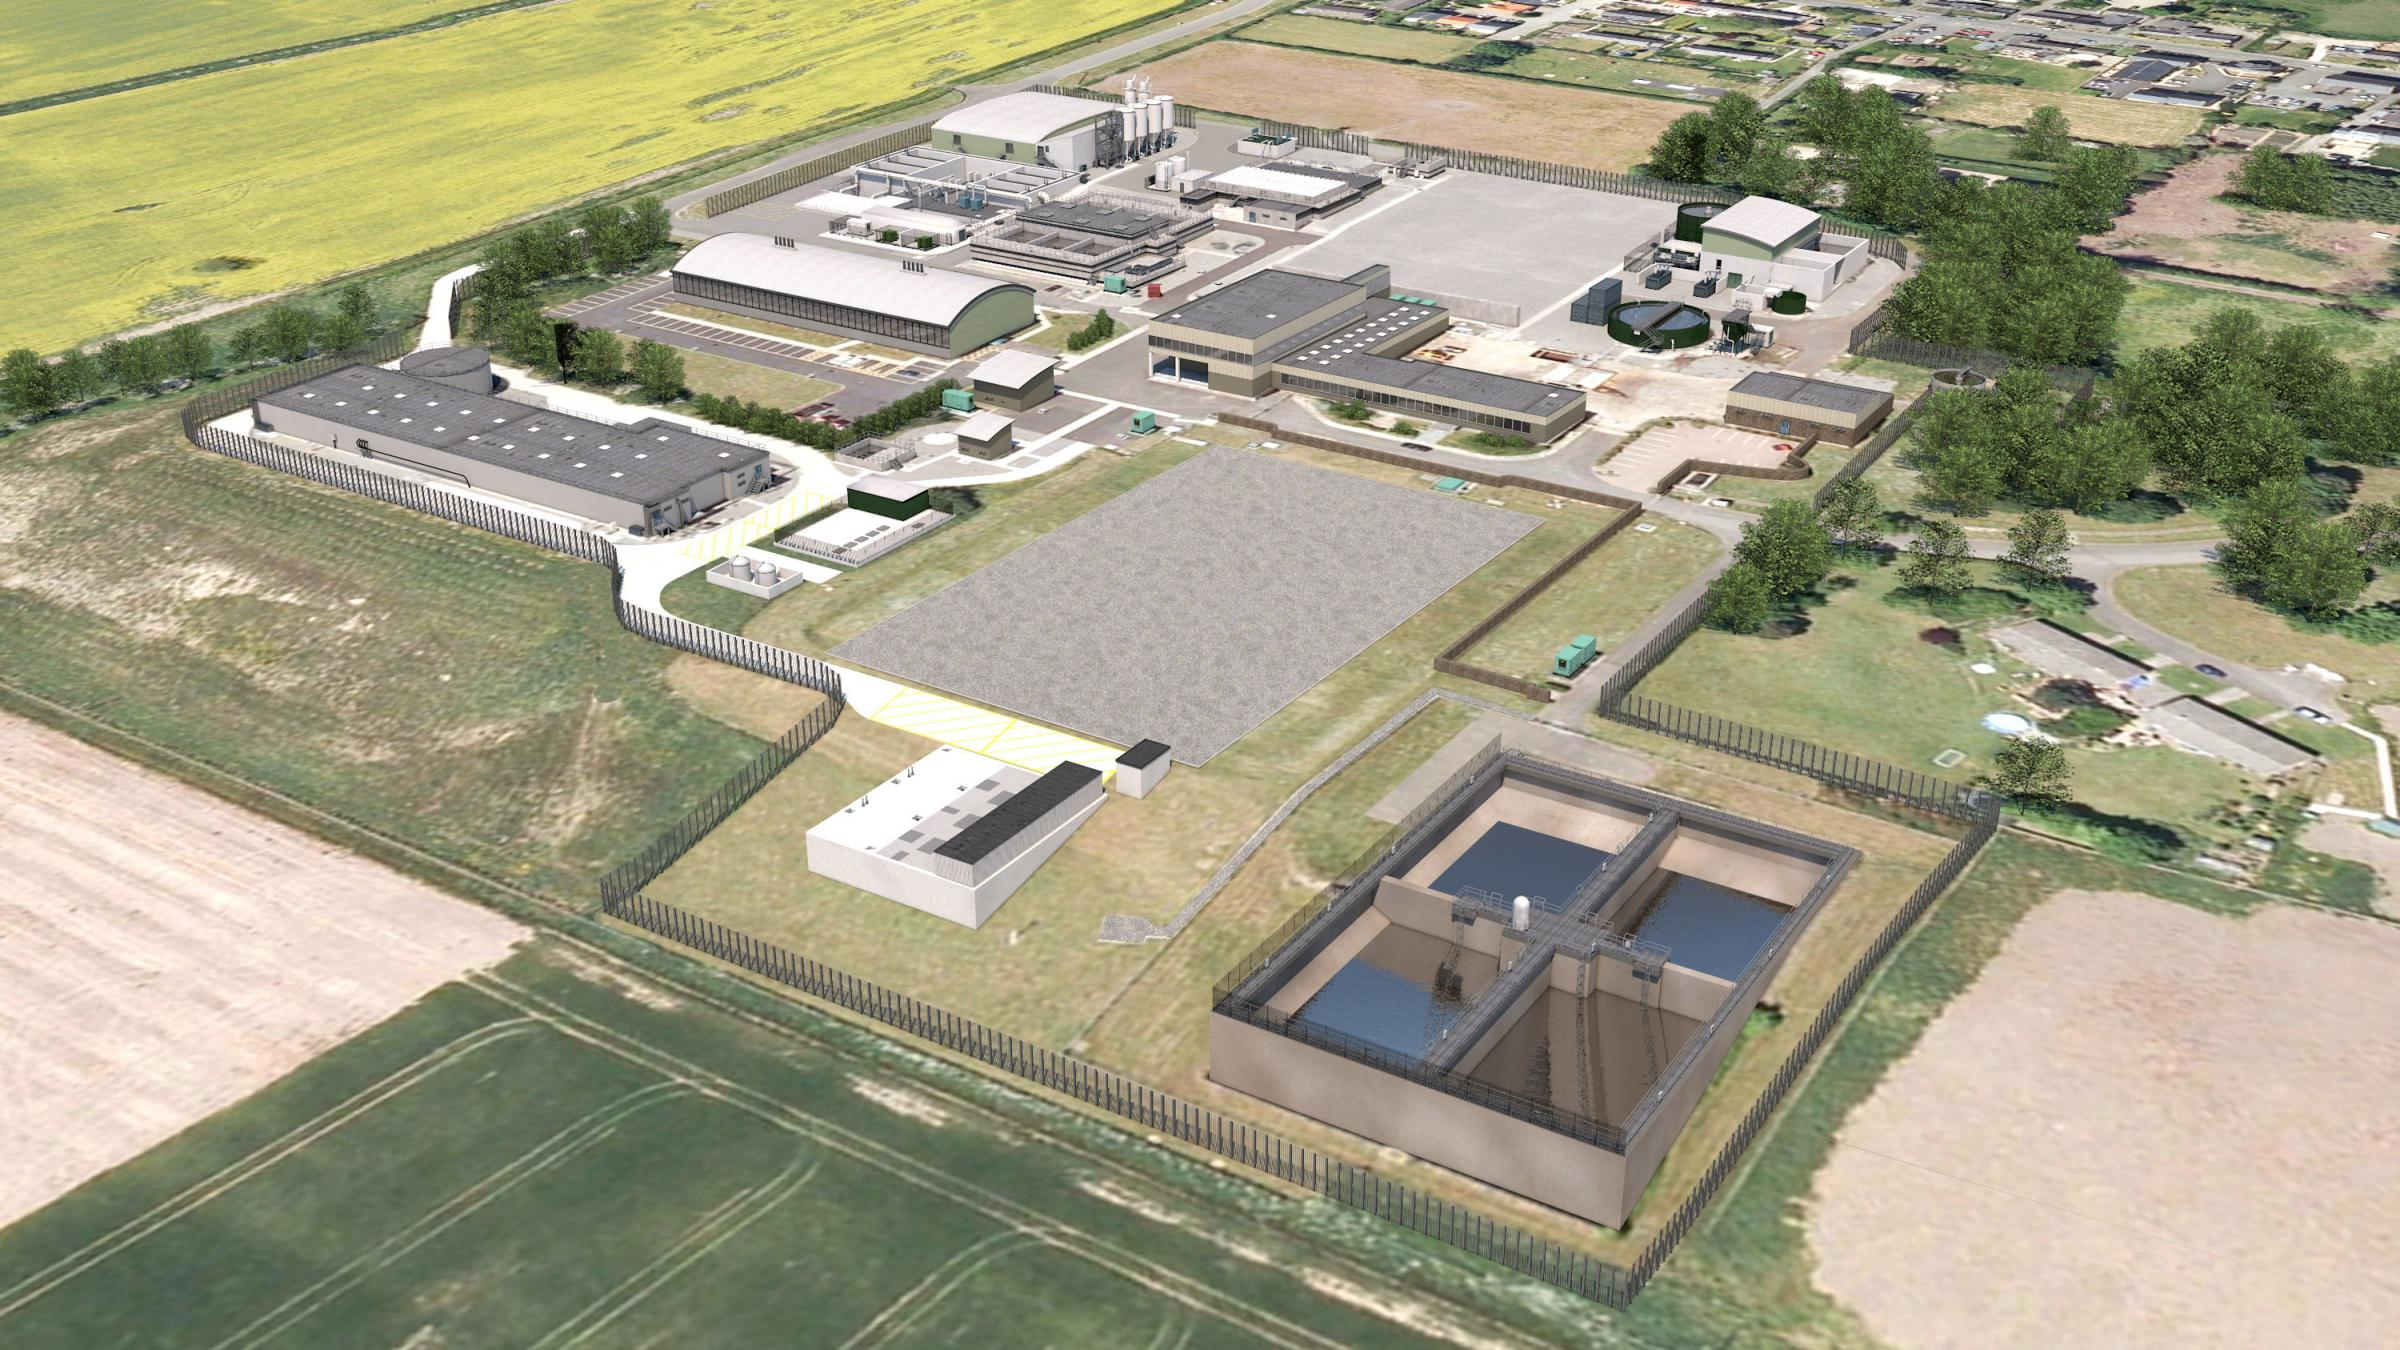 How it is envisaged the Northumbria Water treatment works in Horsley will look following the £46m upgrade.